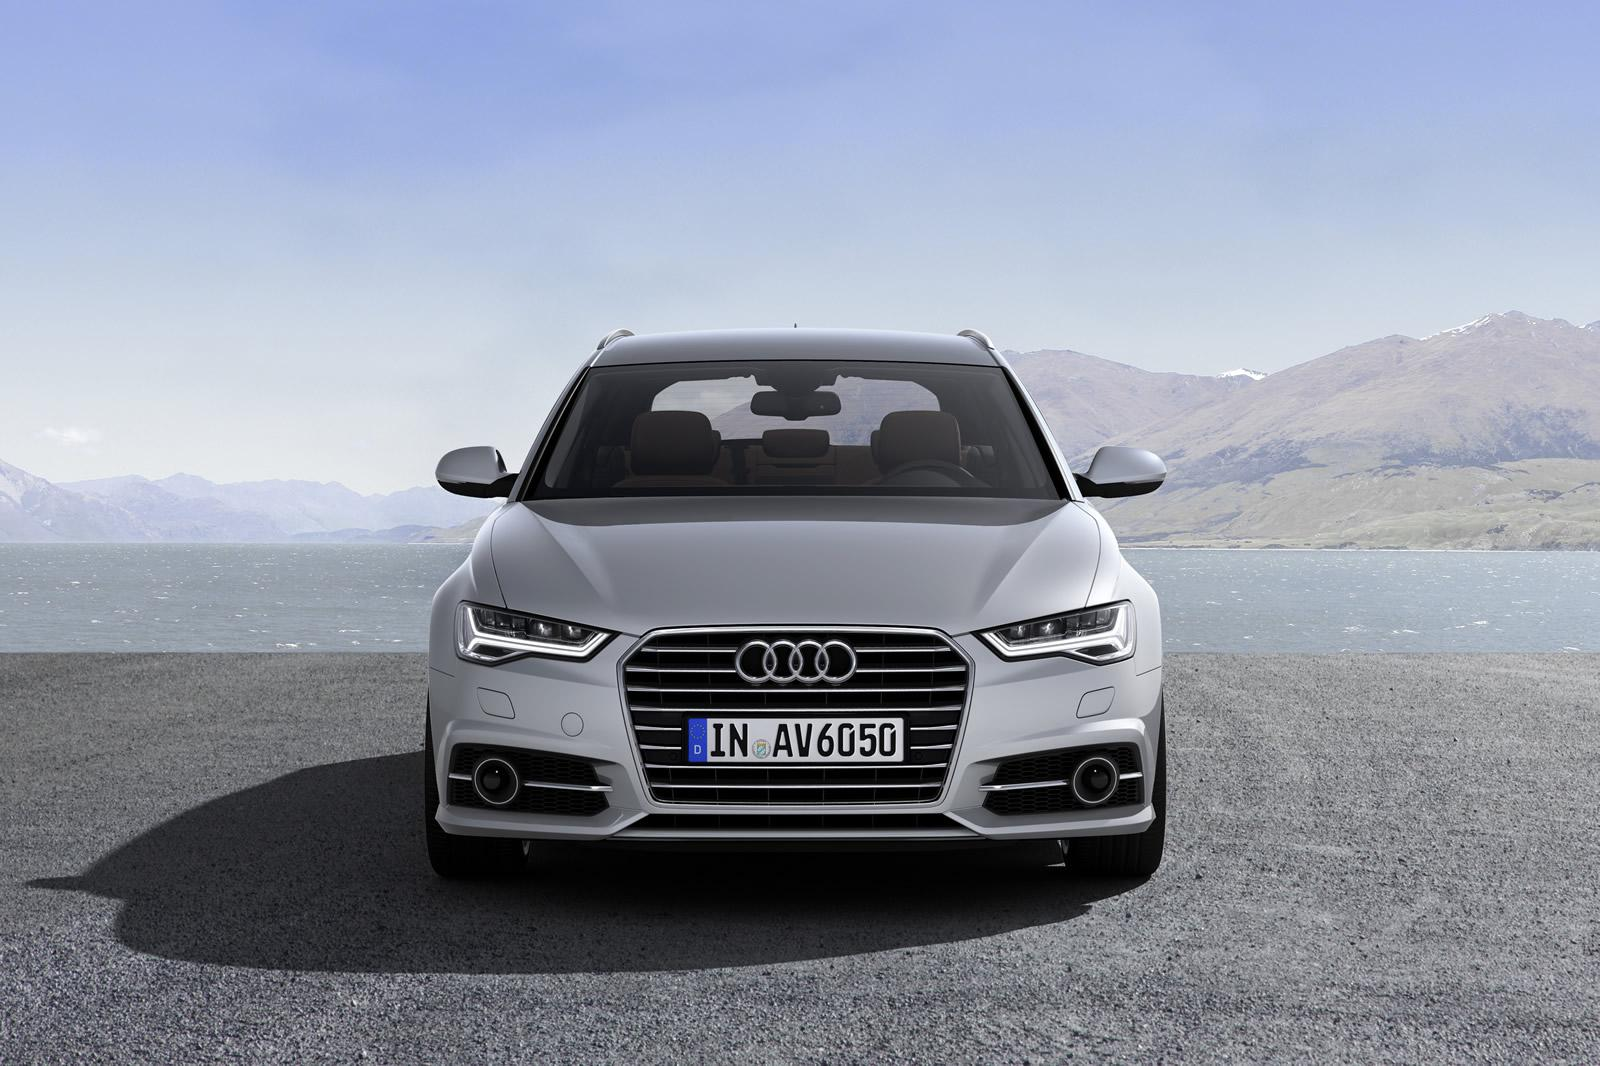 audi quietly kills a6 hybrid on facelift model autoevolution. Black Bedroom Furniture Sets. Home Design Ideas